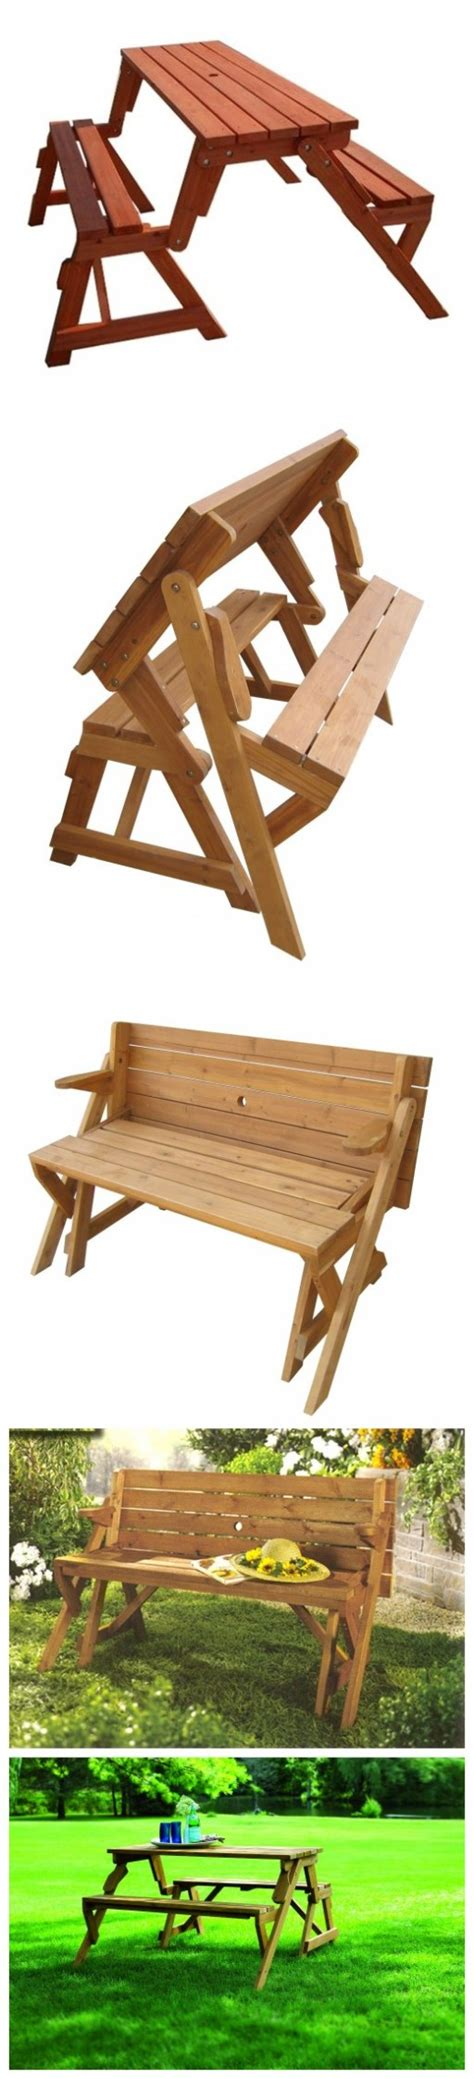 folding bench picnic table folding picnic table bench diy quick woodworking projects